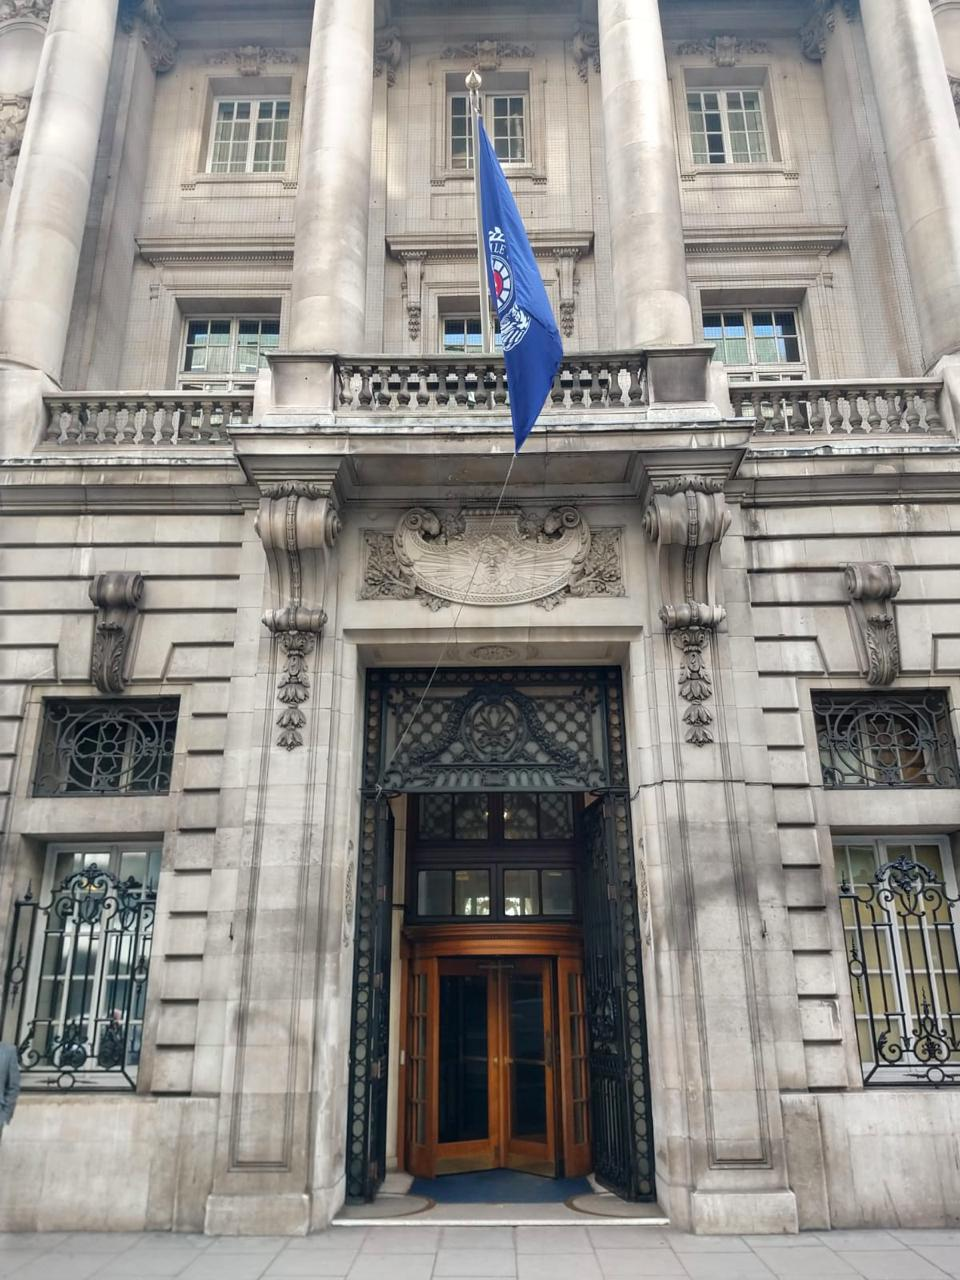 Repair-of-the-Entrance-Gates-Royal-Automobile-Club-89-Pall-Mall-St.-Jamess-London-SW1-1.jpg